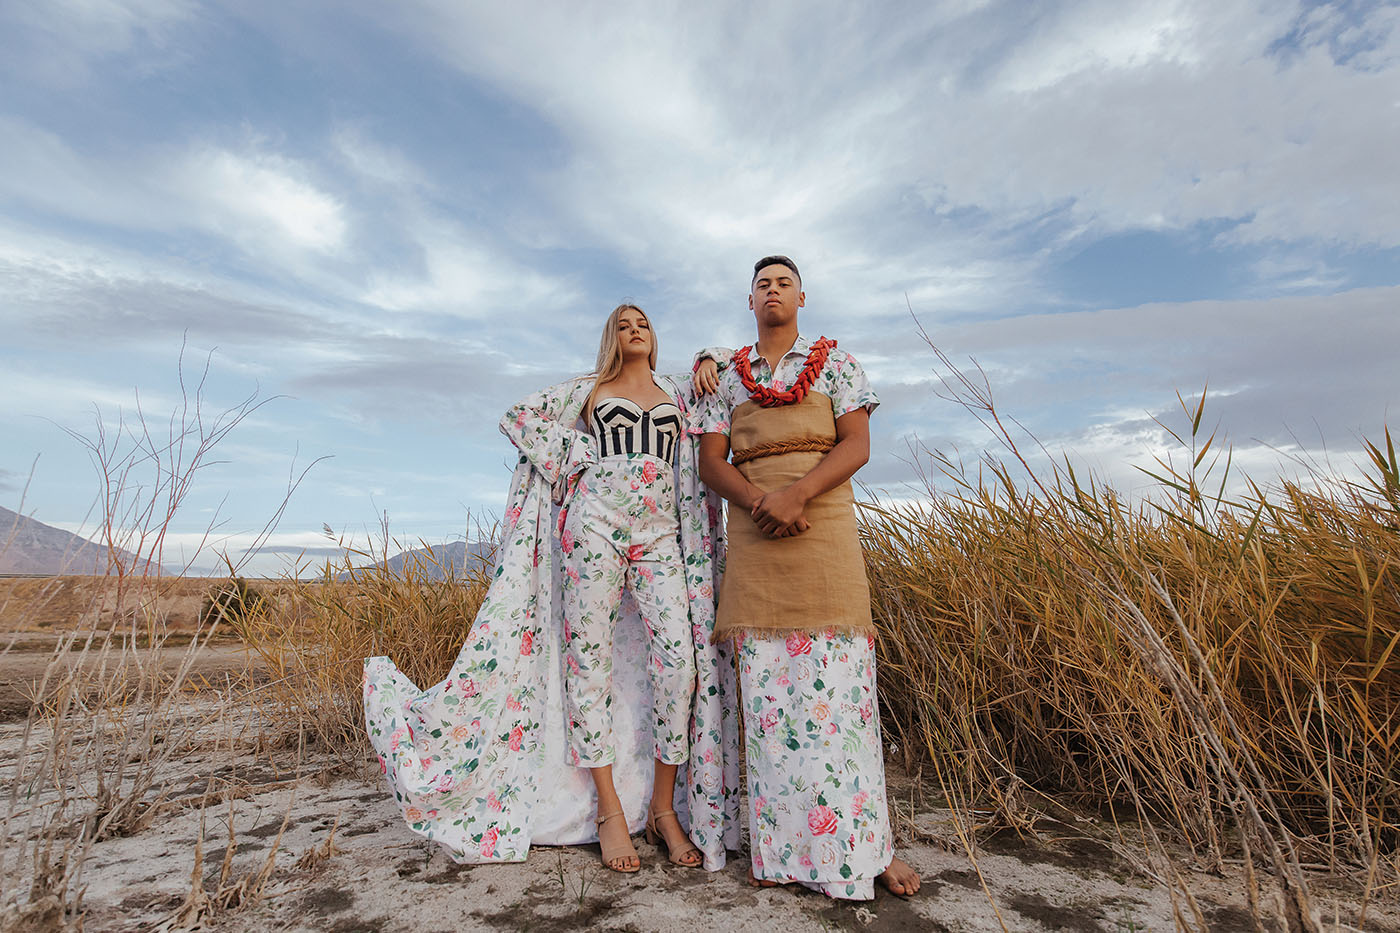 (L–R) Alyssa Bacon and Matthias Perez pose in two floral items designed by Afa Ah Loo. Makeup: @amyjomakeup.